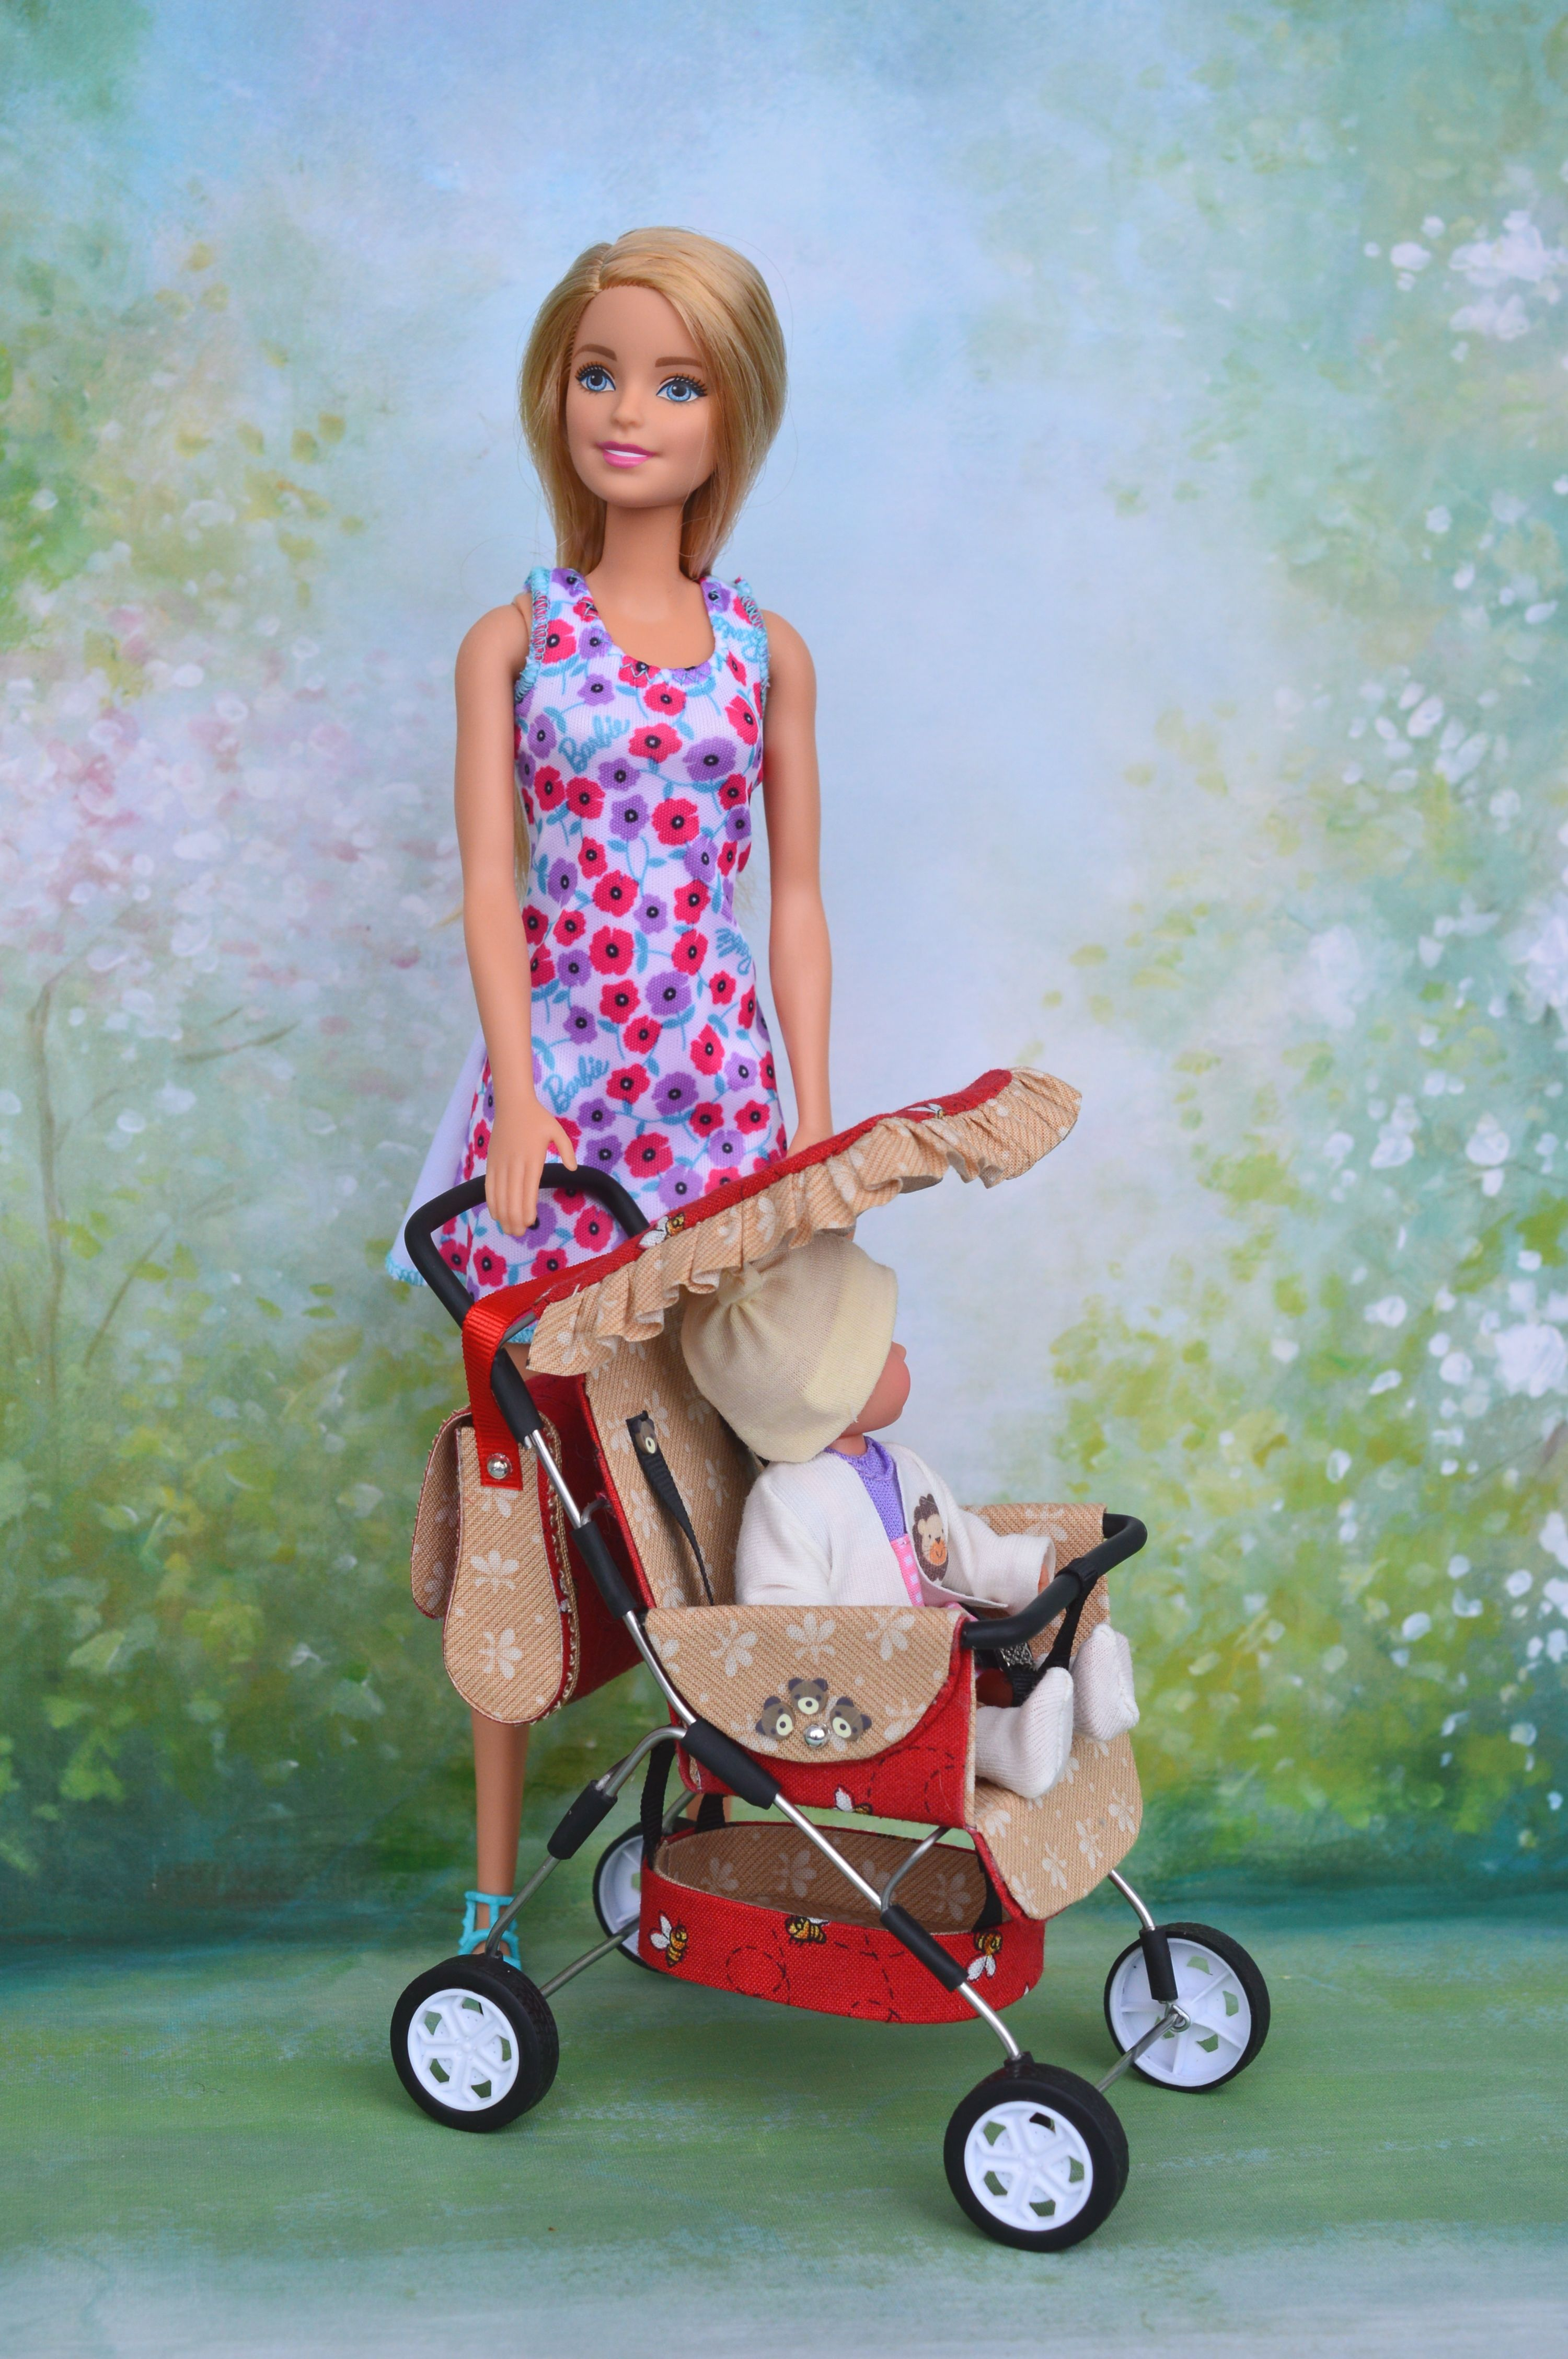 Summer stroller for a doll baby in a scale of 1 6